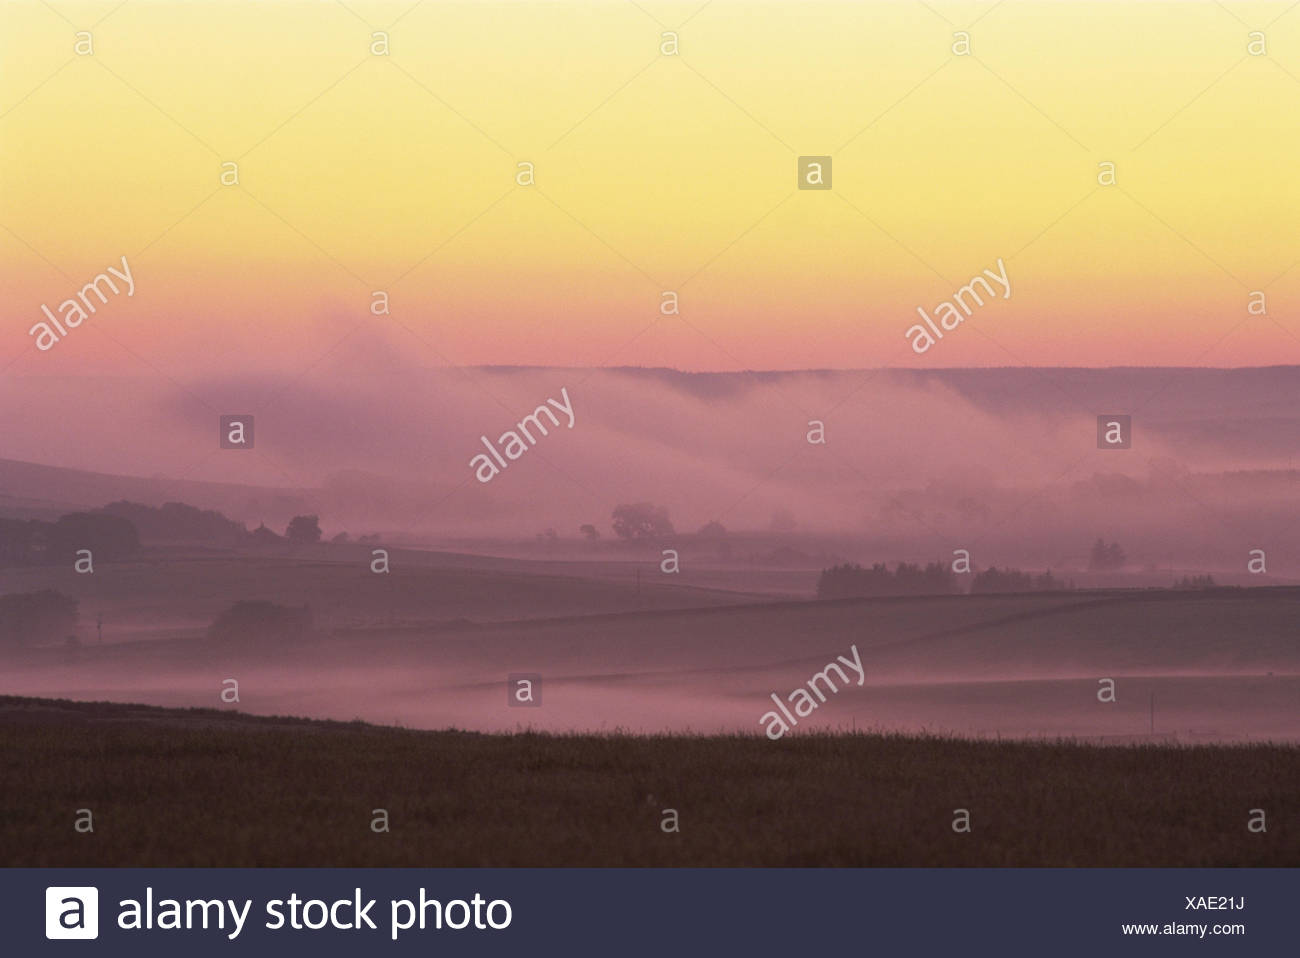 Great Britain, England, Northumbria, scenery, fog, red sky, Europe, Northumberland, width, distance, view, meadows, fields, hills, foggy, awfully, morning, atmospheric, pink, yellow, deserted, - Stock Image